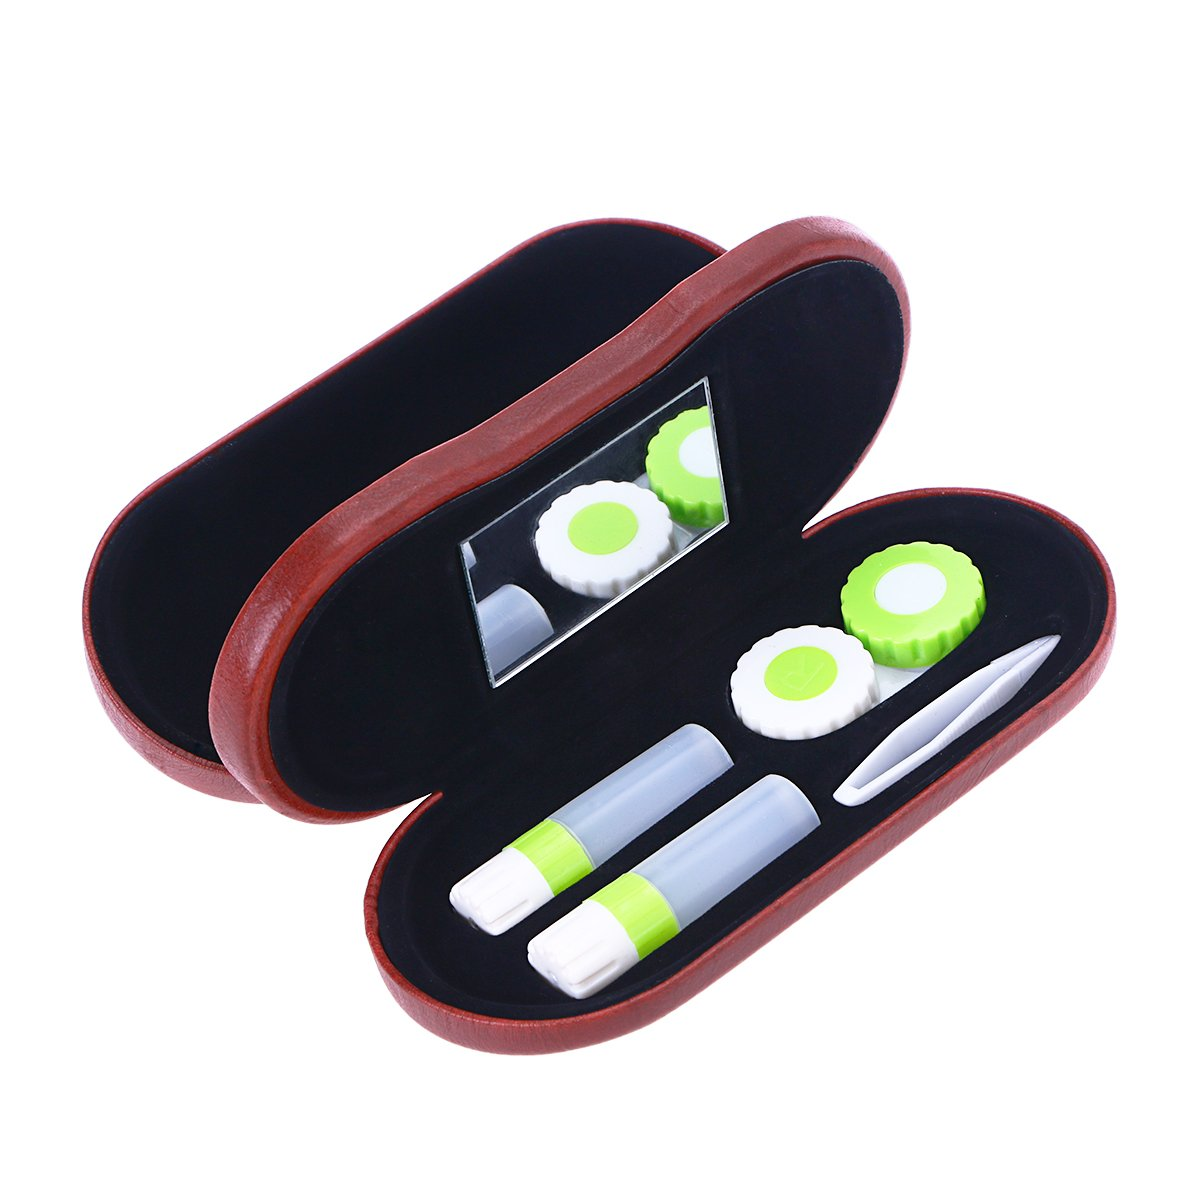 ULTNICE 2-in-1 Portable Eyeglass Case Contact Lens Case Double Use for Home Travel Kit (Red)